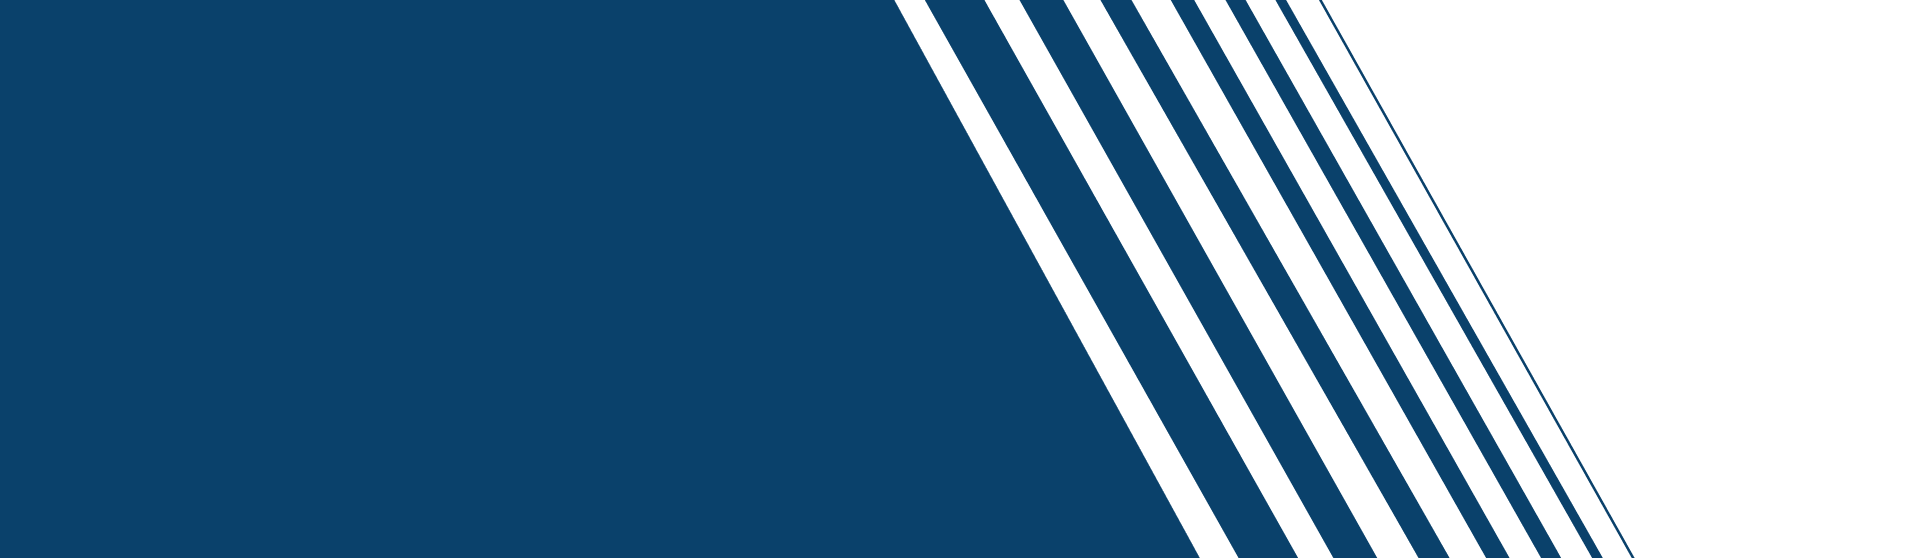 Placeholder in blue